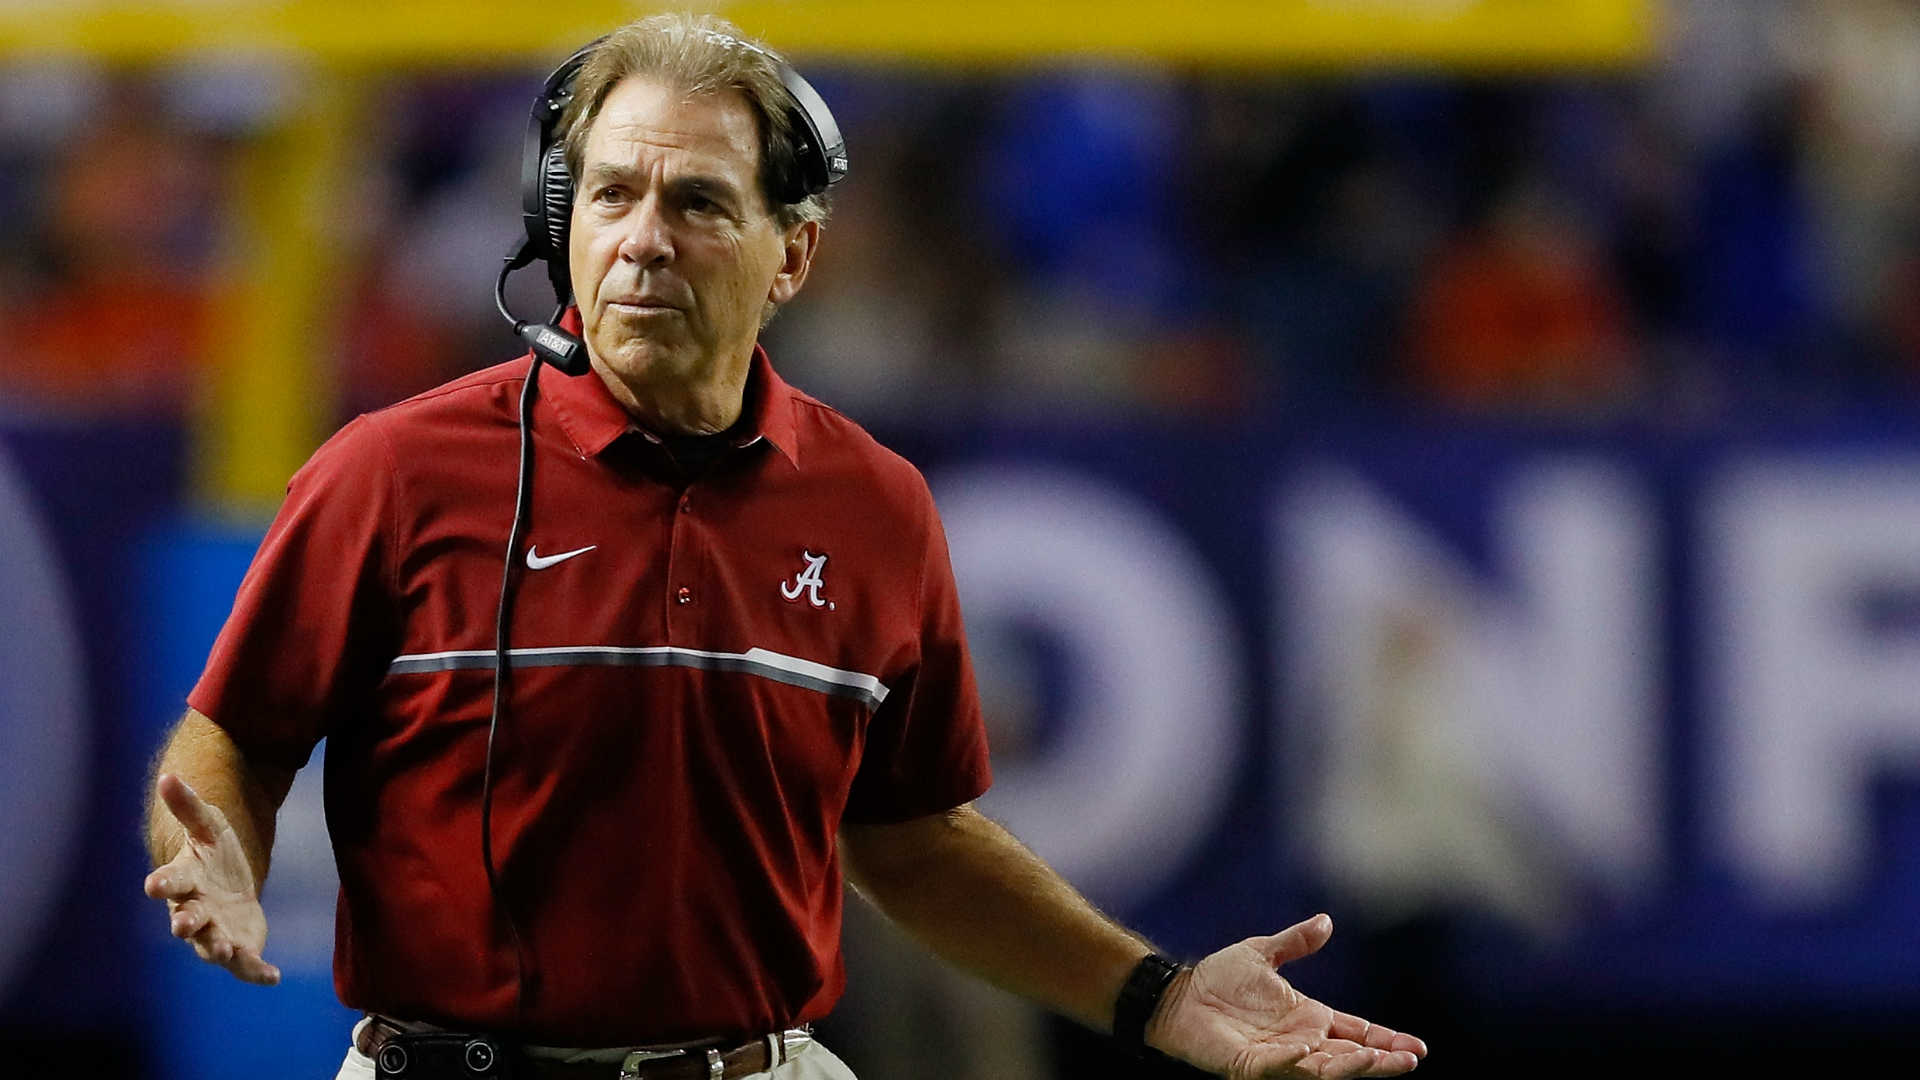 Nick-saban-120316-getty-ftr_v3l53at19f1i101qhny262o0y